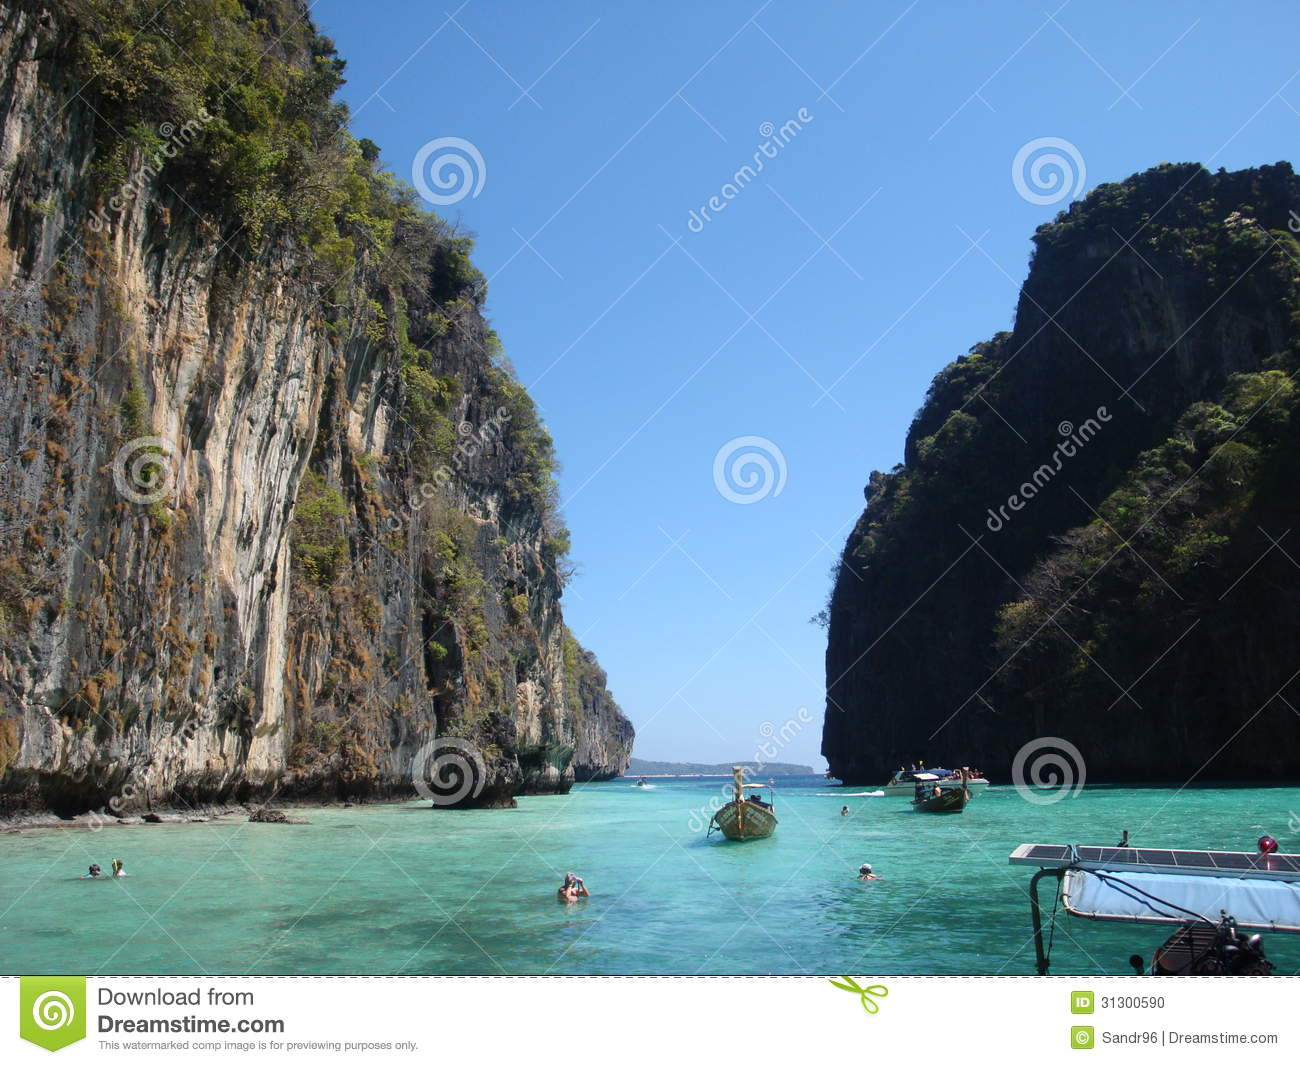 The Islands In The Andaman Sea Stock Photo Image 31300590